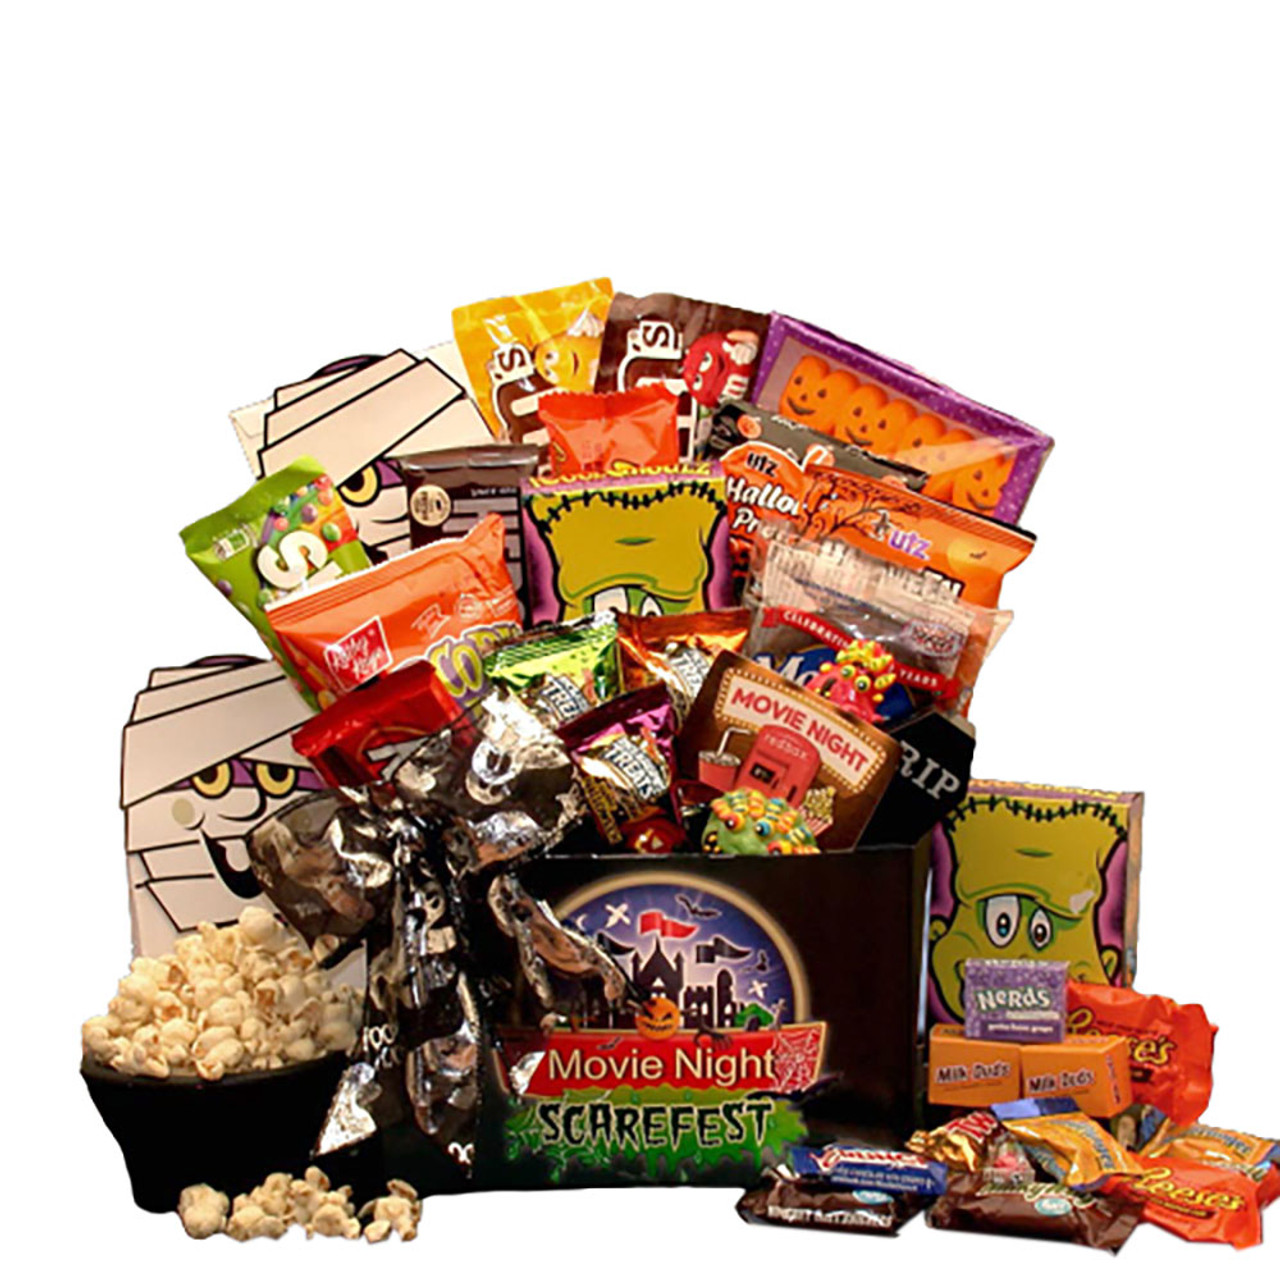 Halloween Spook-fest Movie Gift Box with $5 Redbox Card